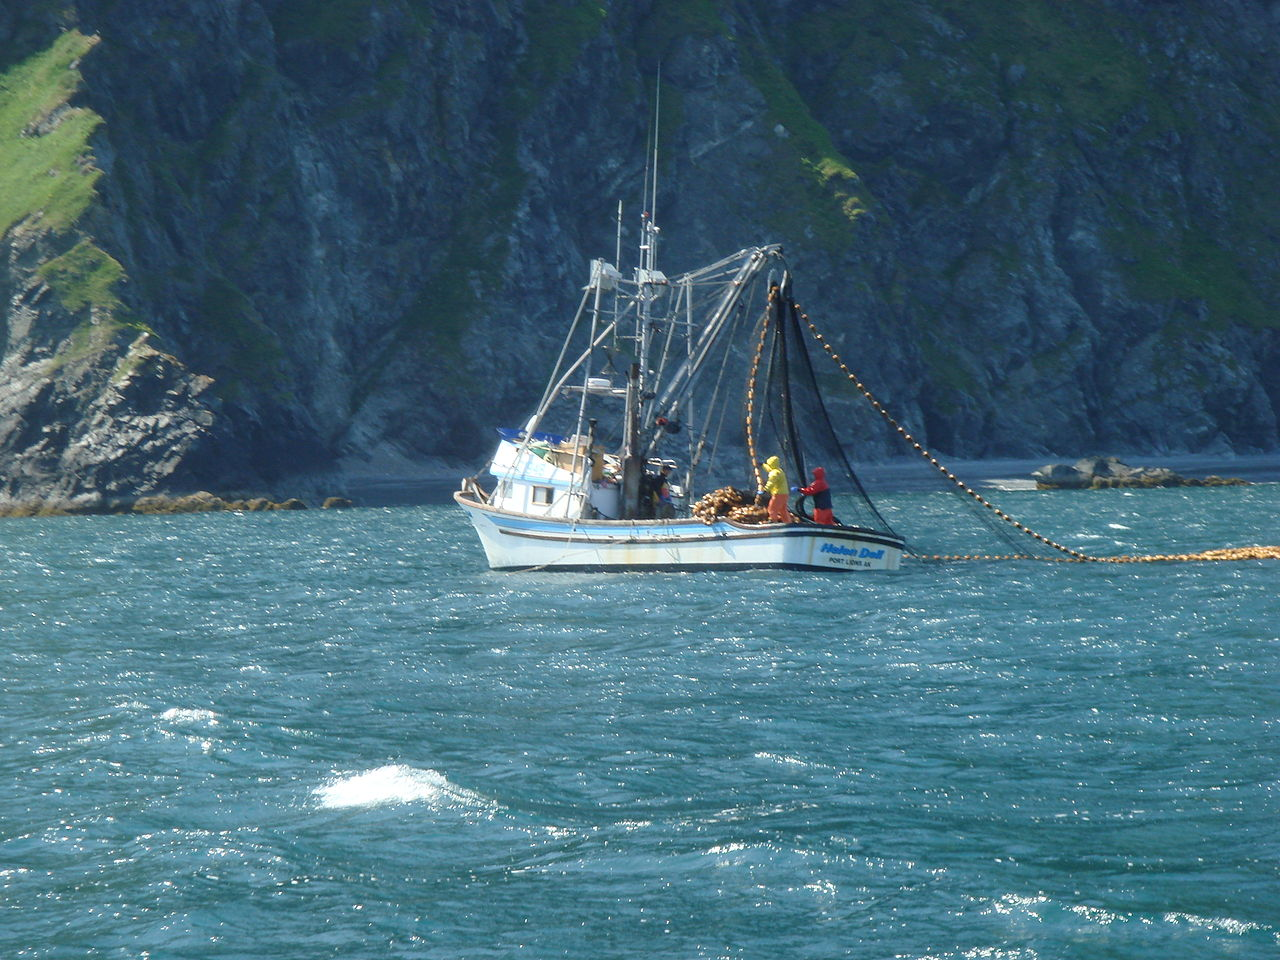 R Fisheries File:Seiner off the co...